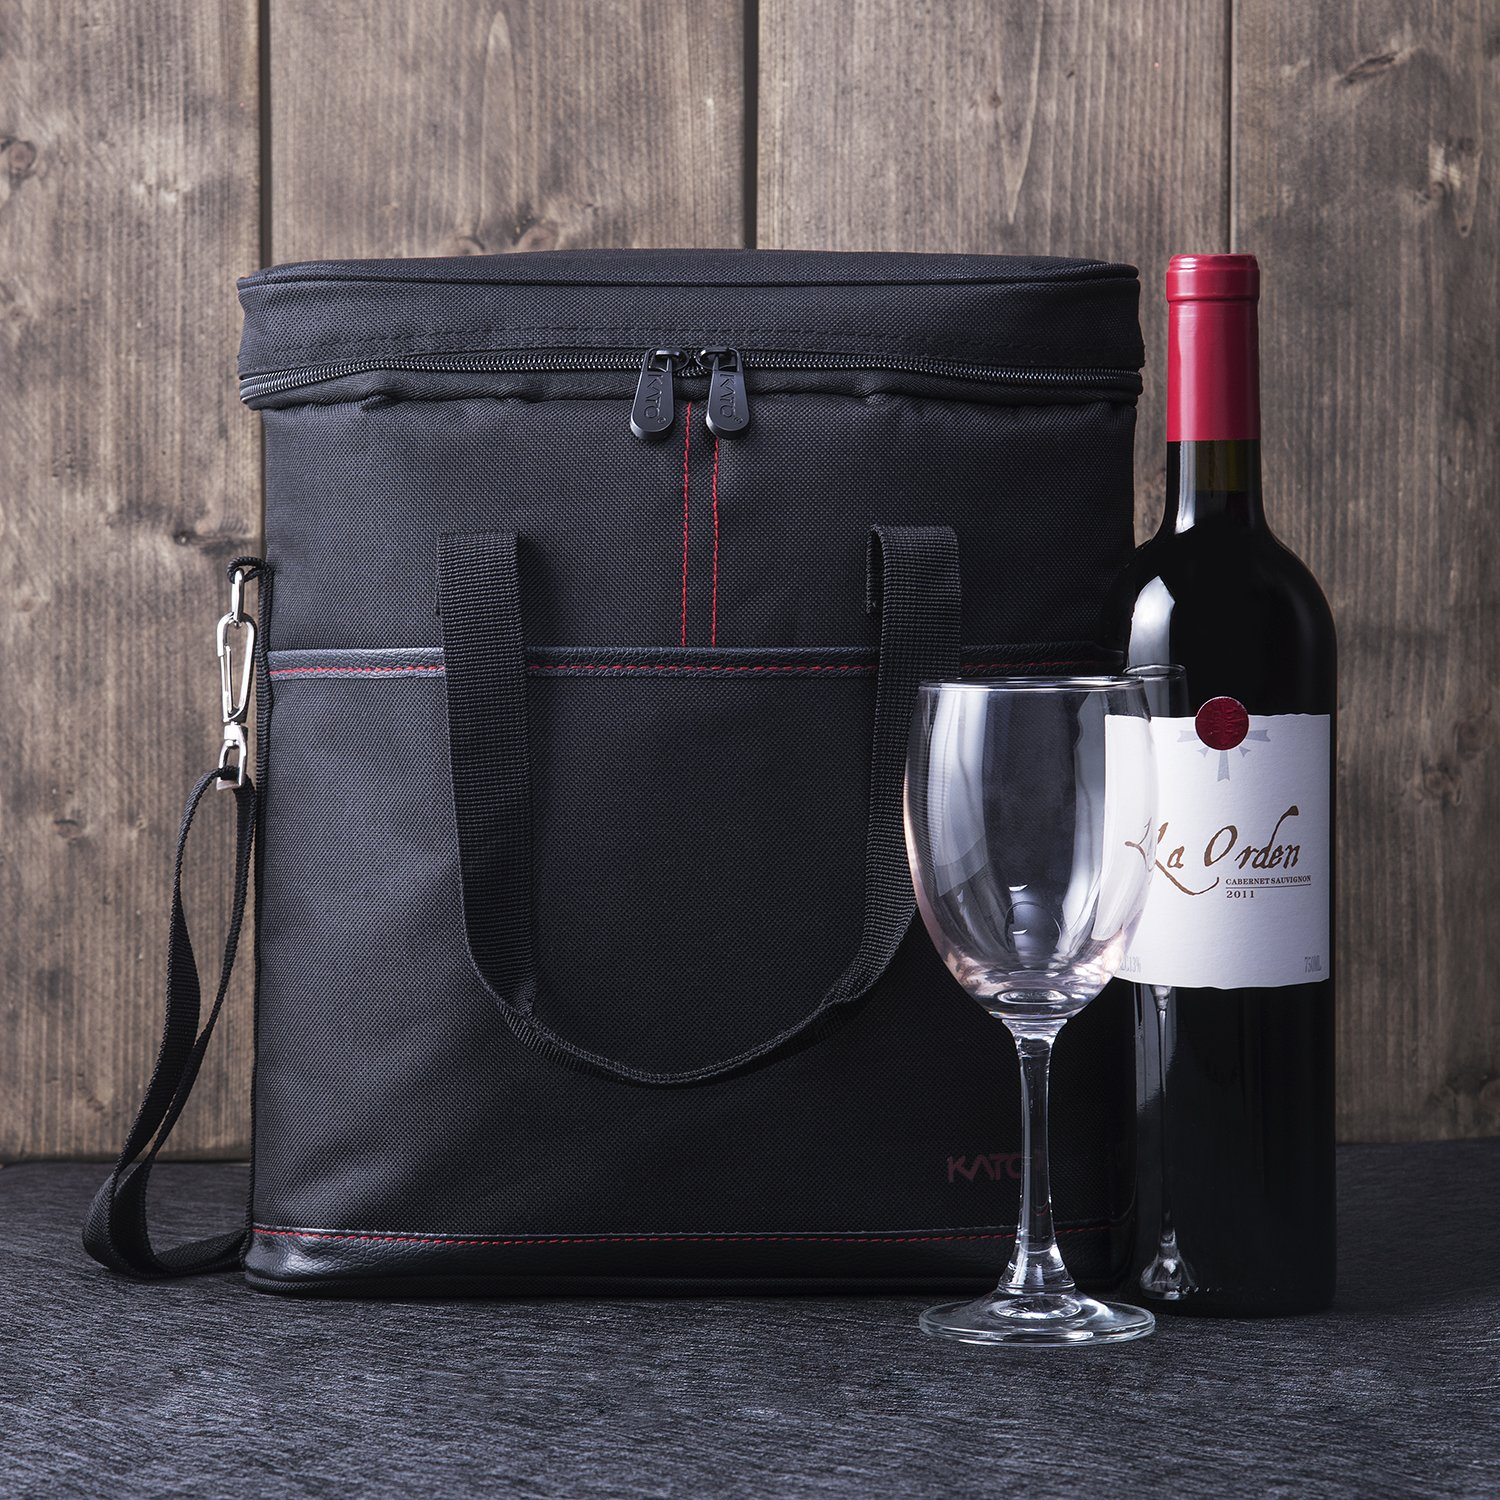 Tirrinia Insulated Wine Carrier - 3 Bottle Travel Padded Wine Carry Cooler Tote Bag with Handle and Adjustable Shoulder Strap + Free Corkscrew, Black by Tirrinia (Image #7)